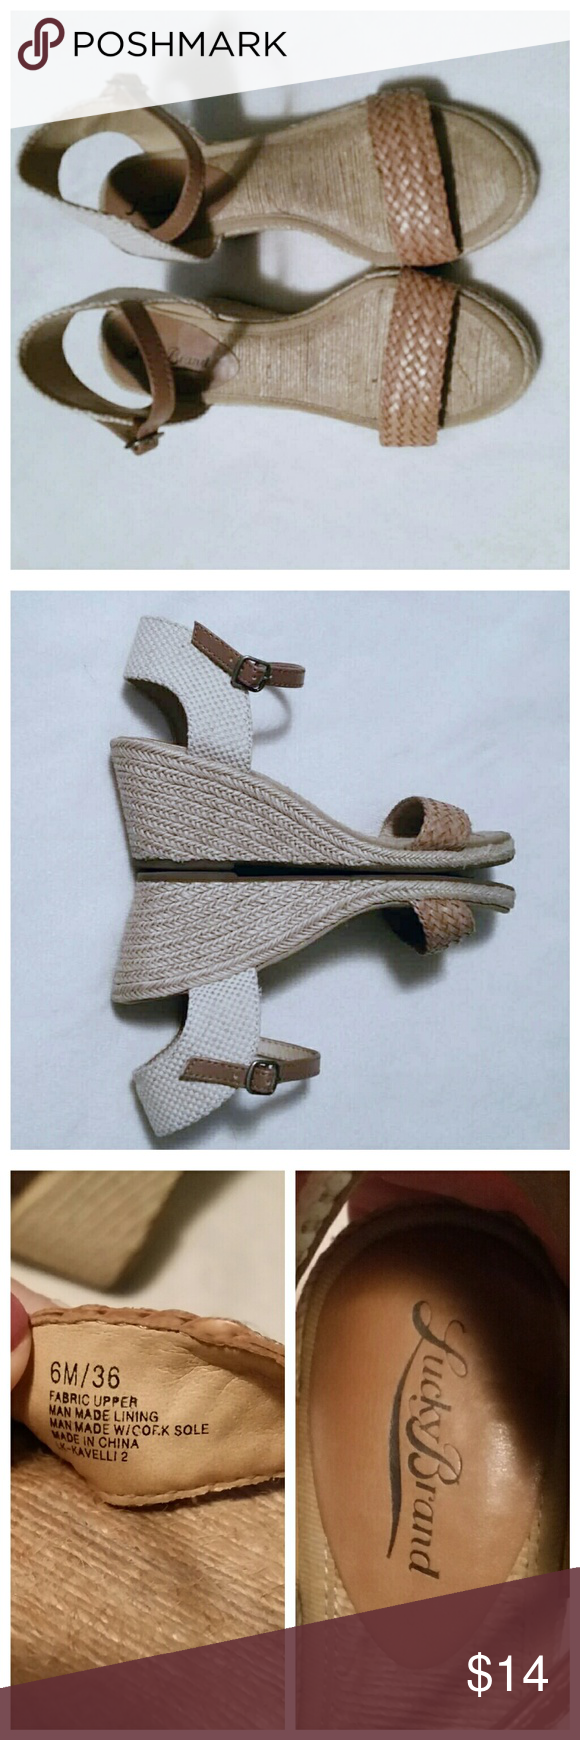 Lucky Brand Wedge heels In excellent condition.  Sisal and cork wedge heel. Lucky Brand Shoes Wedges